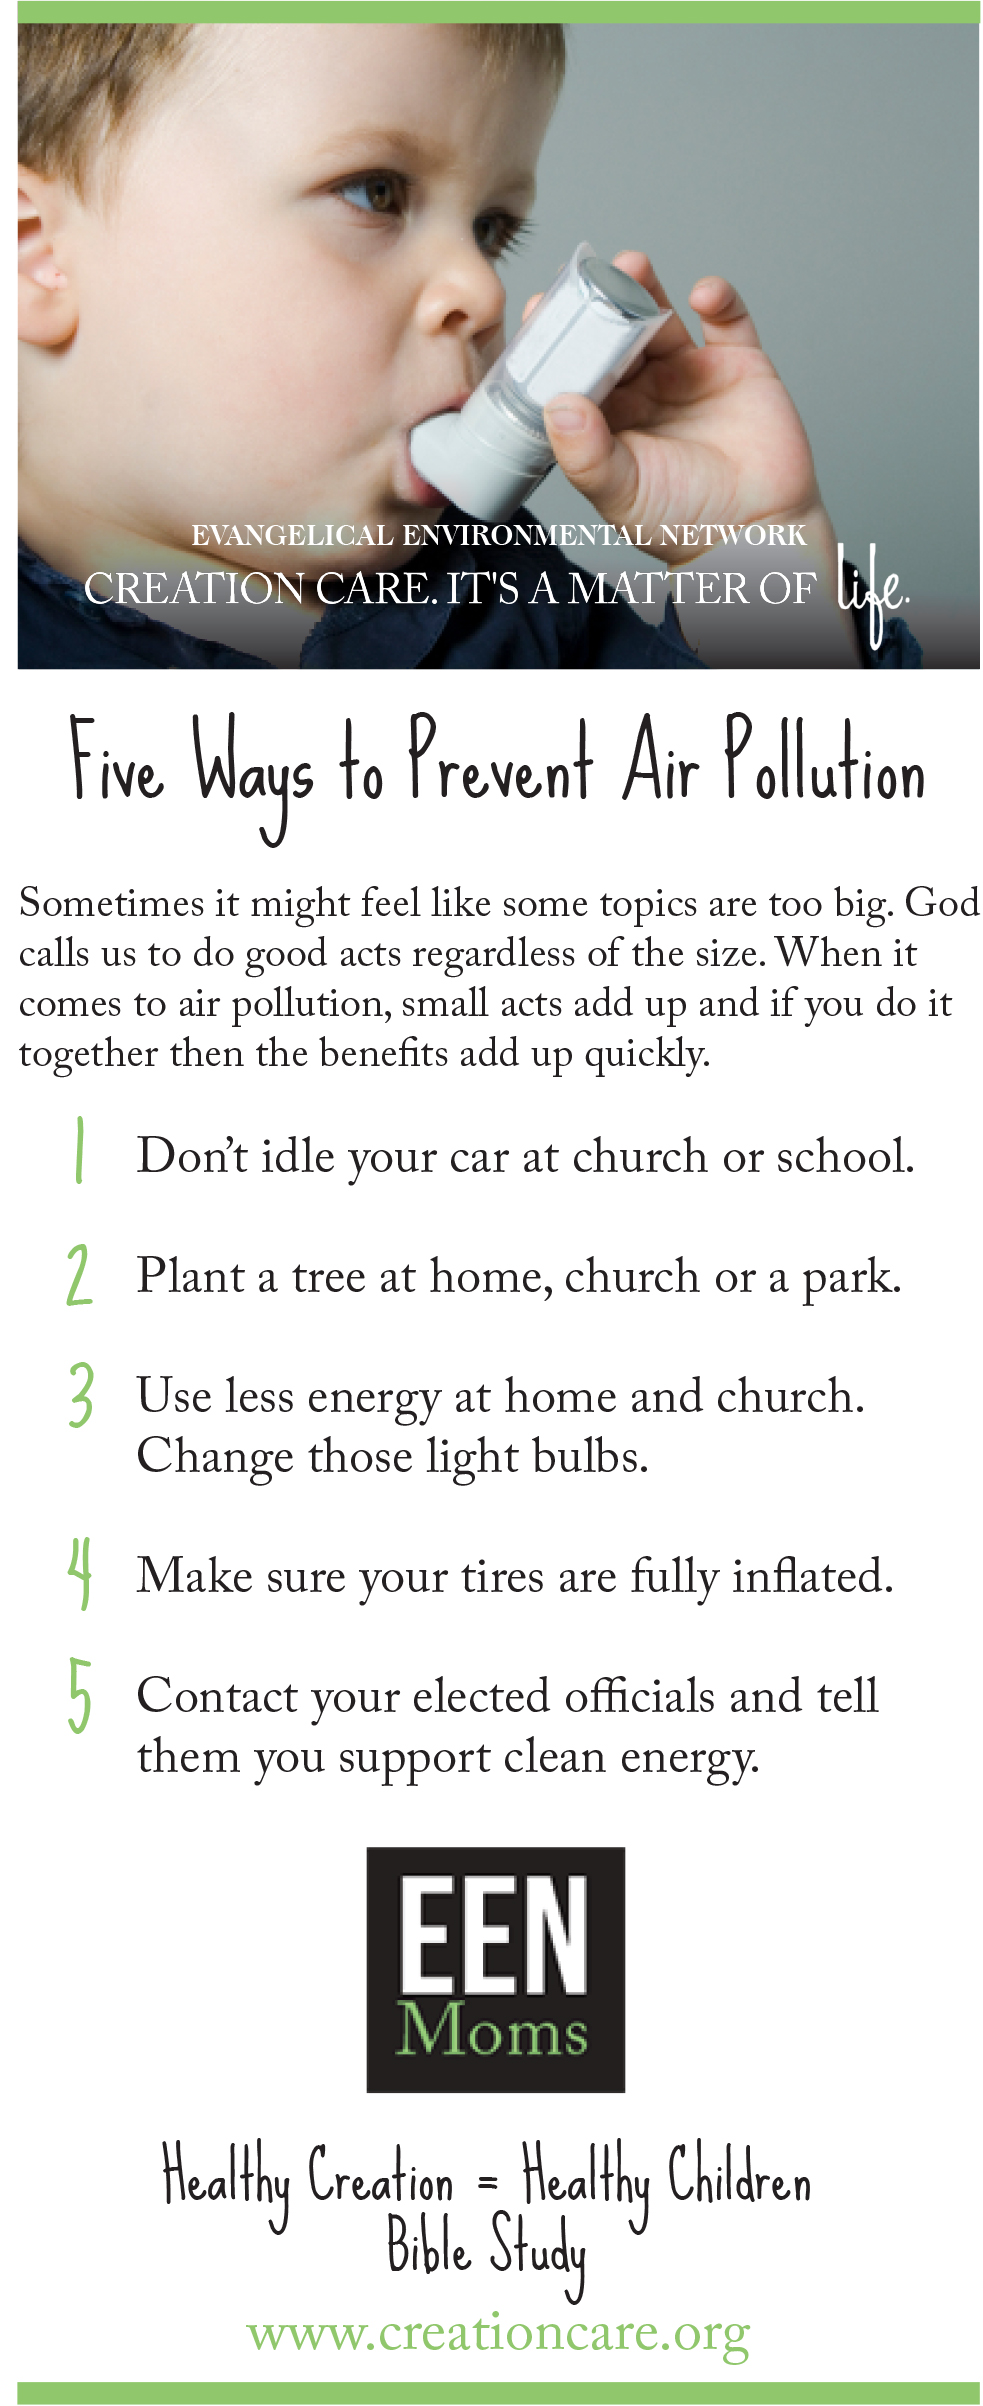 5 Ways to Reduce Air Pollution